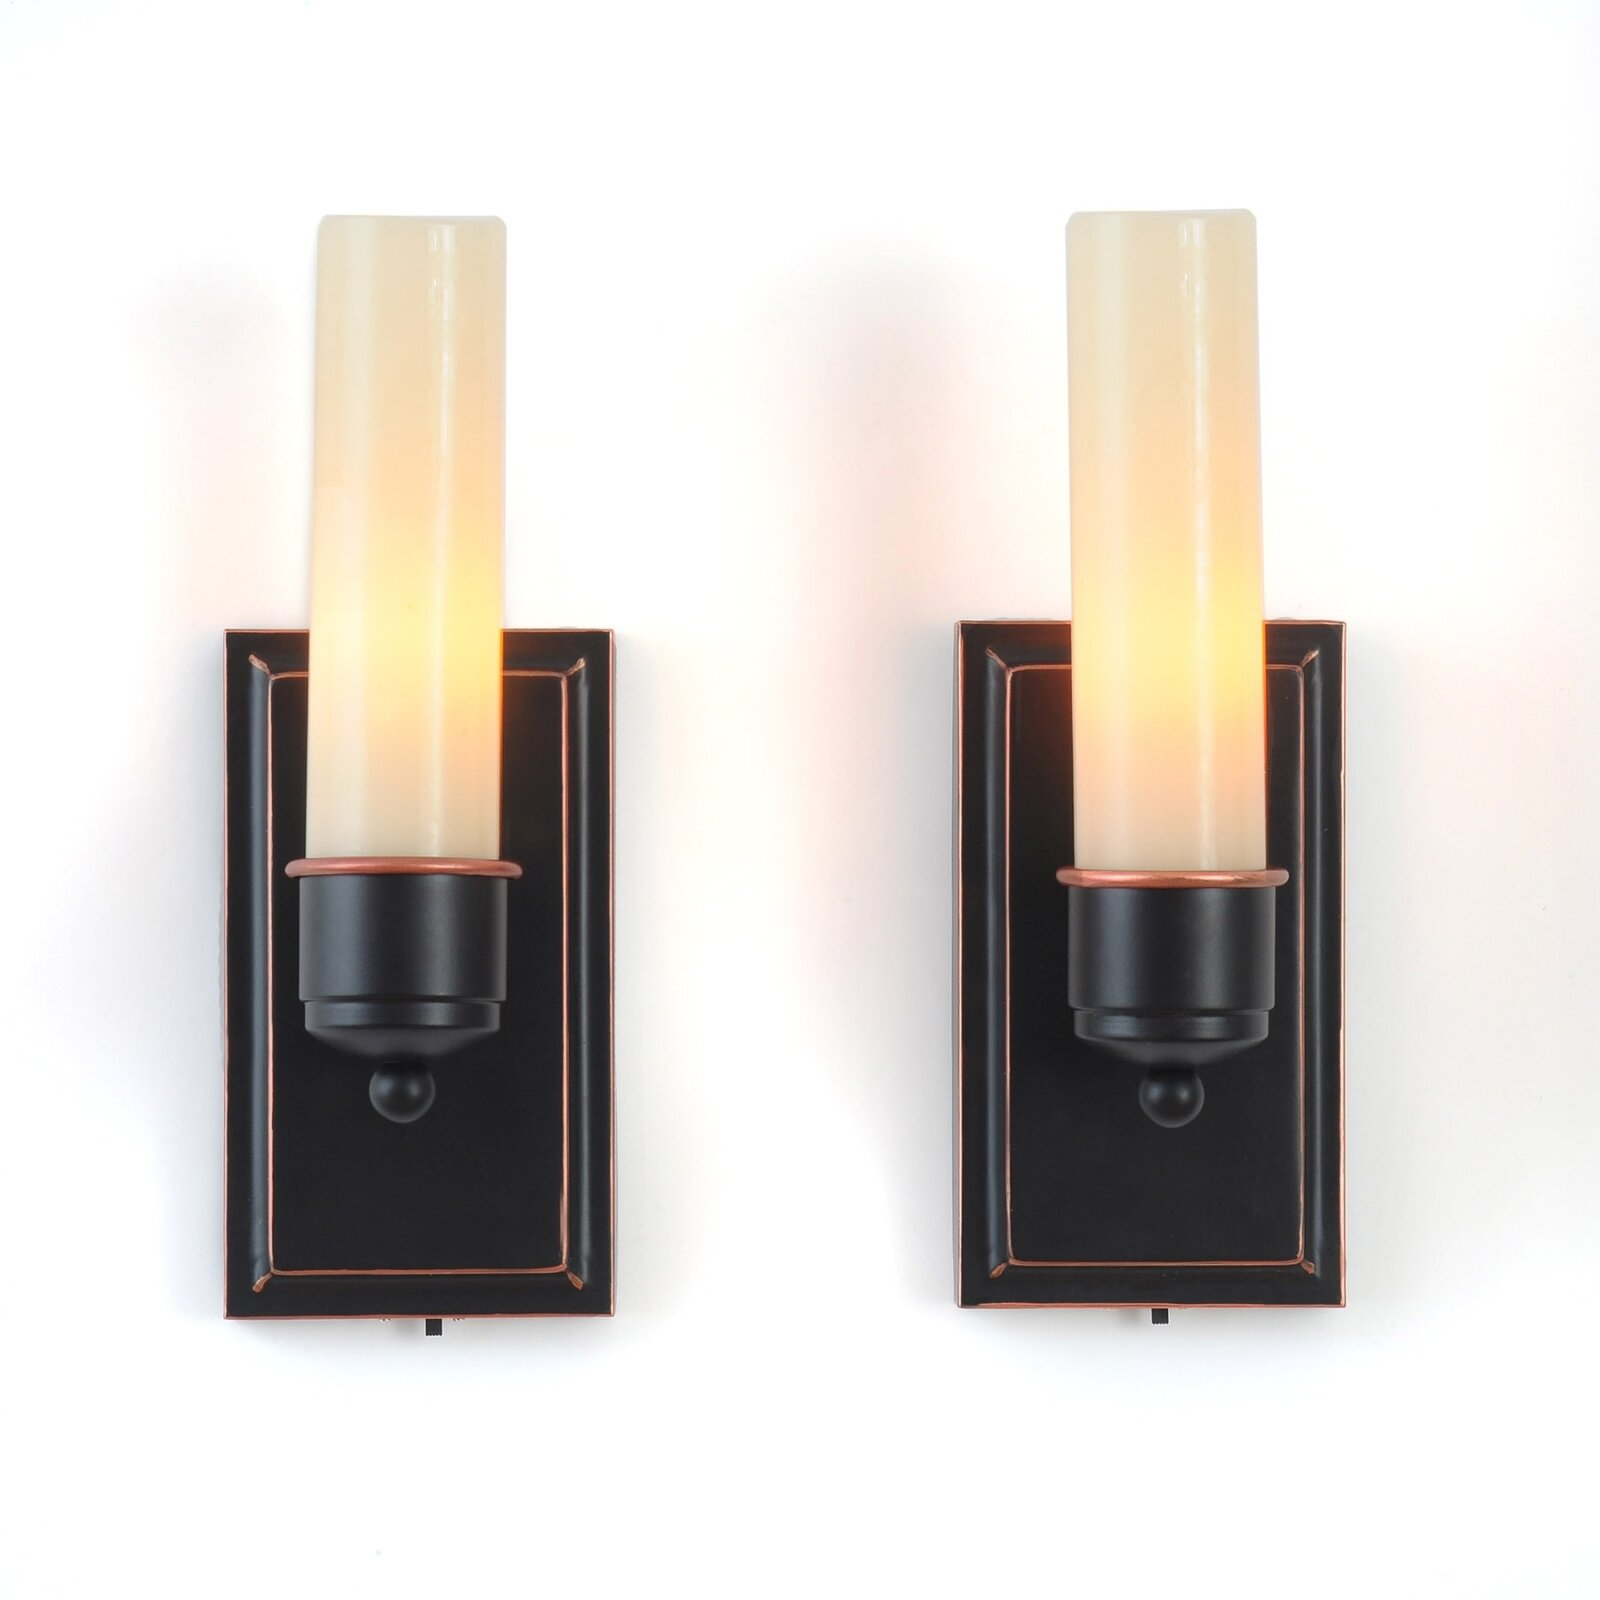 Wall Sconce With Led Timer Candle : Lion Sports CandleTEK Wall Sconces Flameless Candles Set of 2 eBay